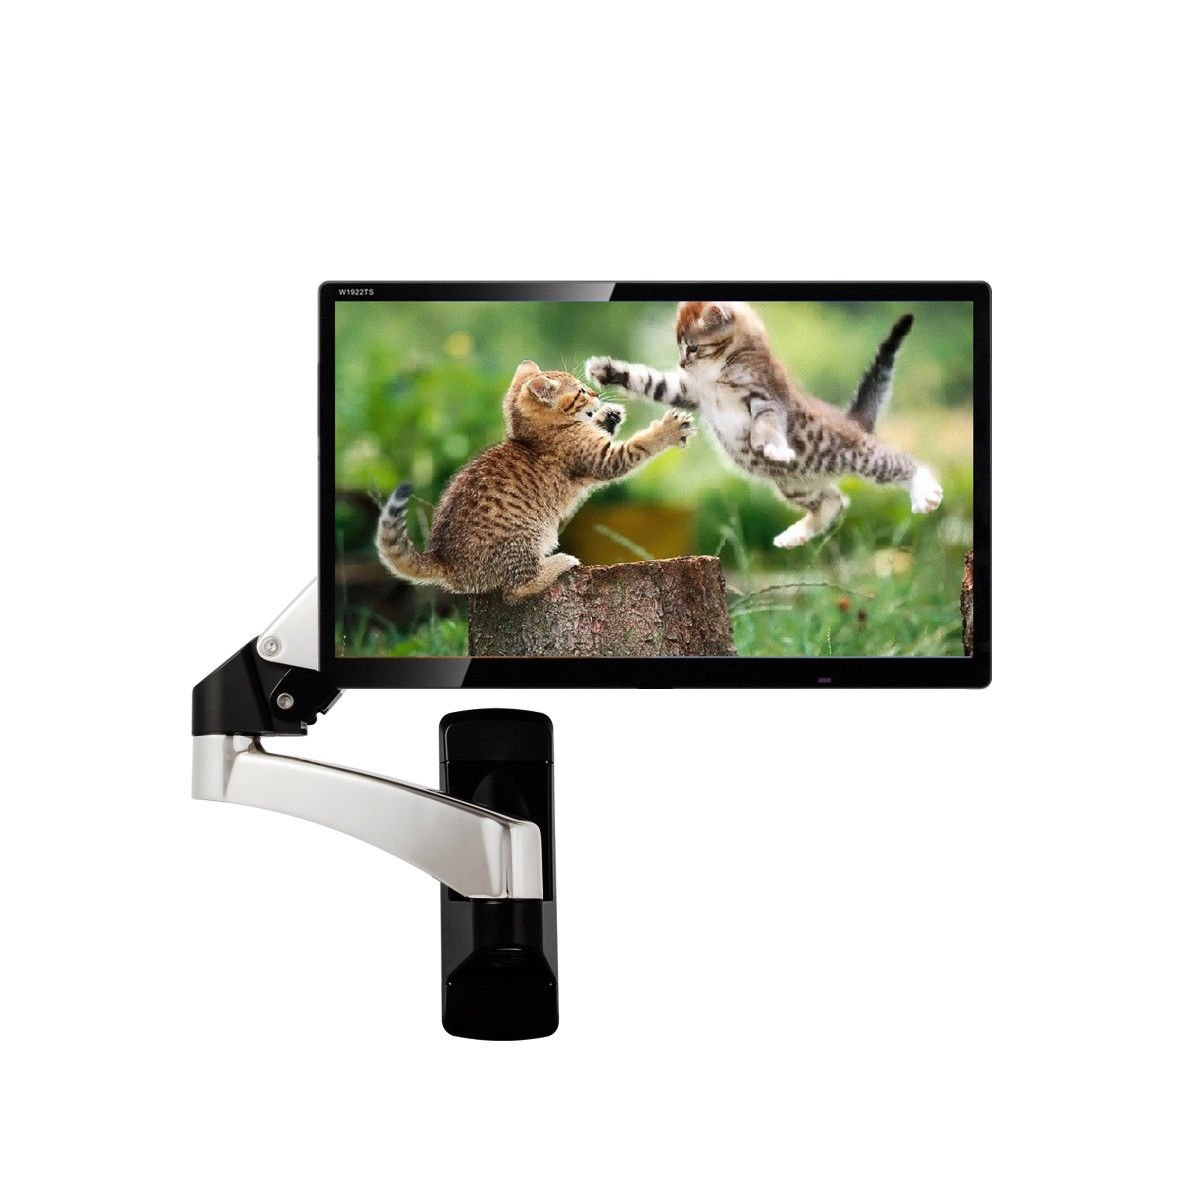 Tangkula Monitor Wall Mount Hydraulic Adjustable Articulating Extension for 32 To 42'' Up To 51lbs TV Monitor Bracket Silver